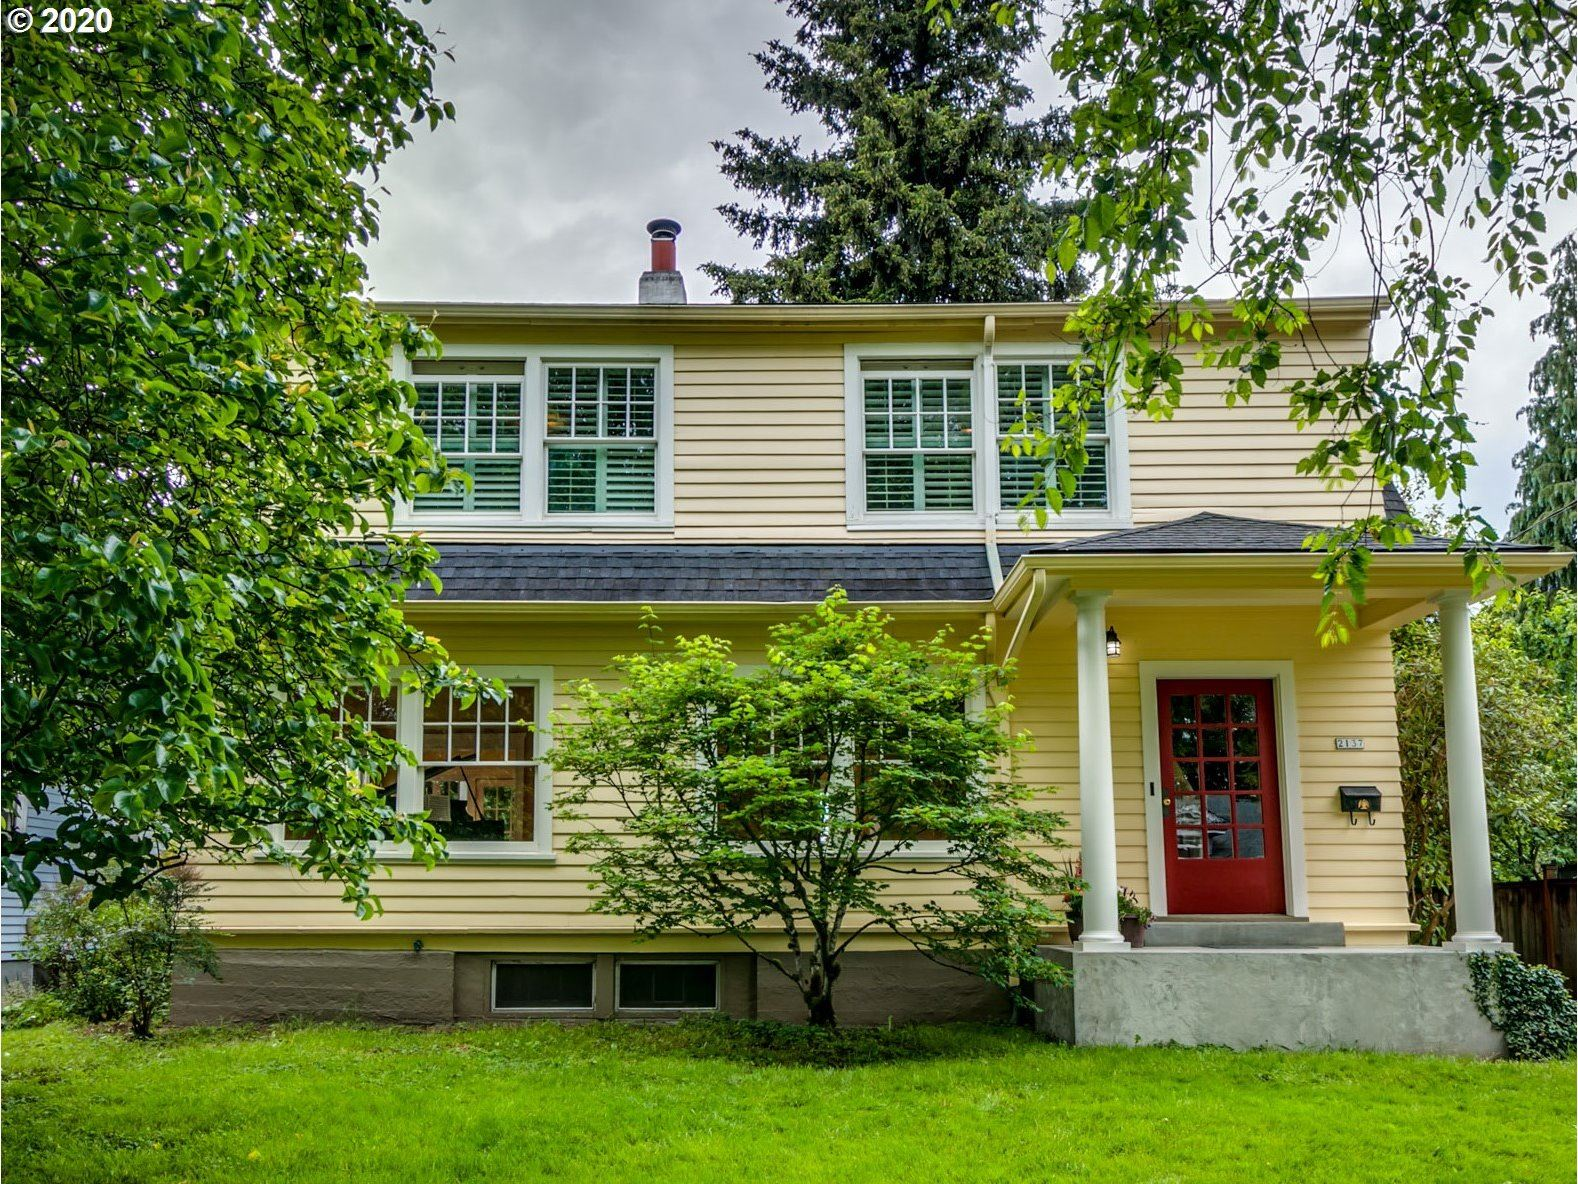 Photo for 2137 NE 51ST AVE, Portland, OR 97213 (MLS # 20585368)